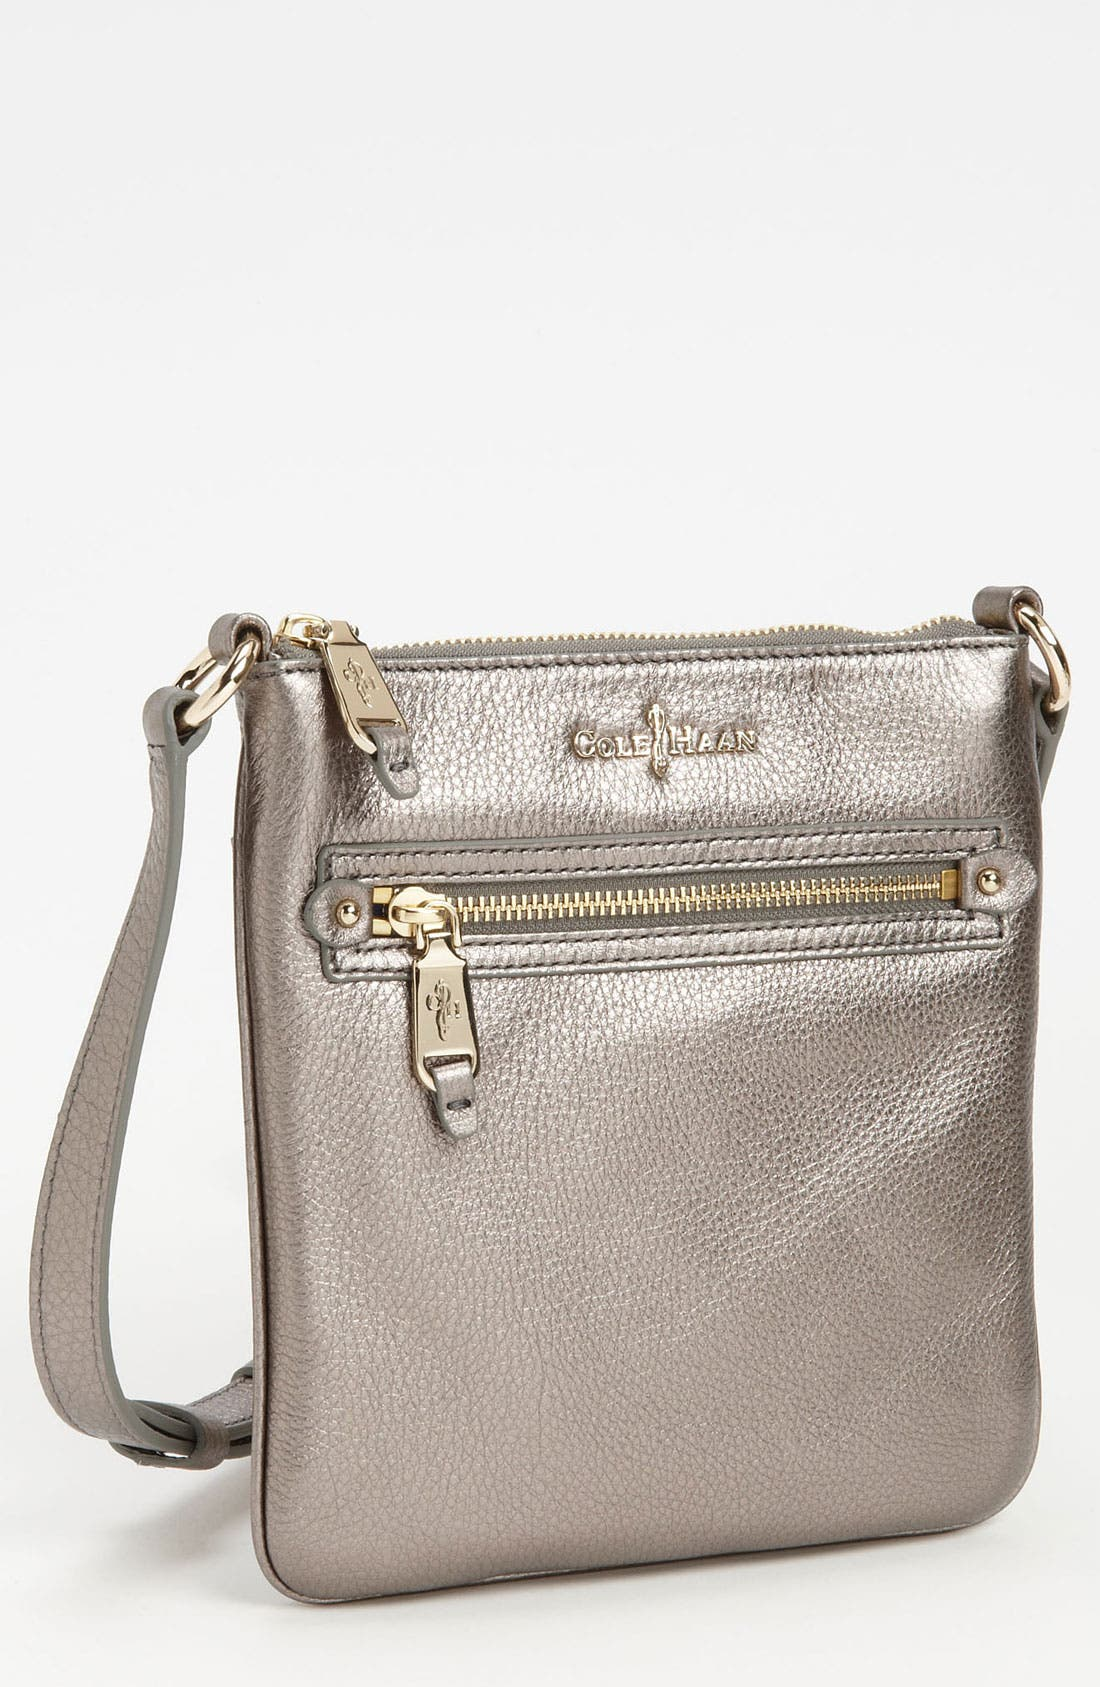 Main Image - Cole Haan 'Linley - Swing Pack' Crossbody Bag